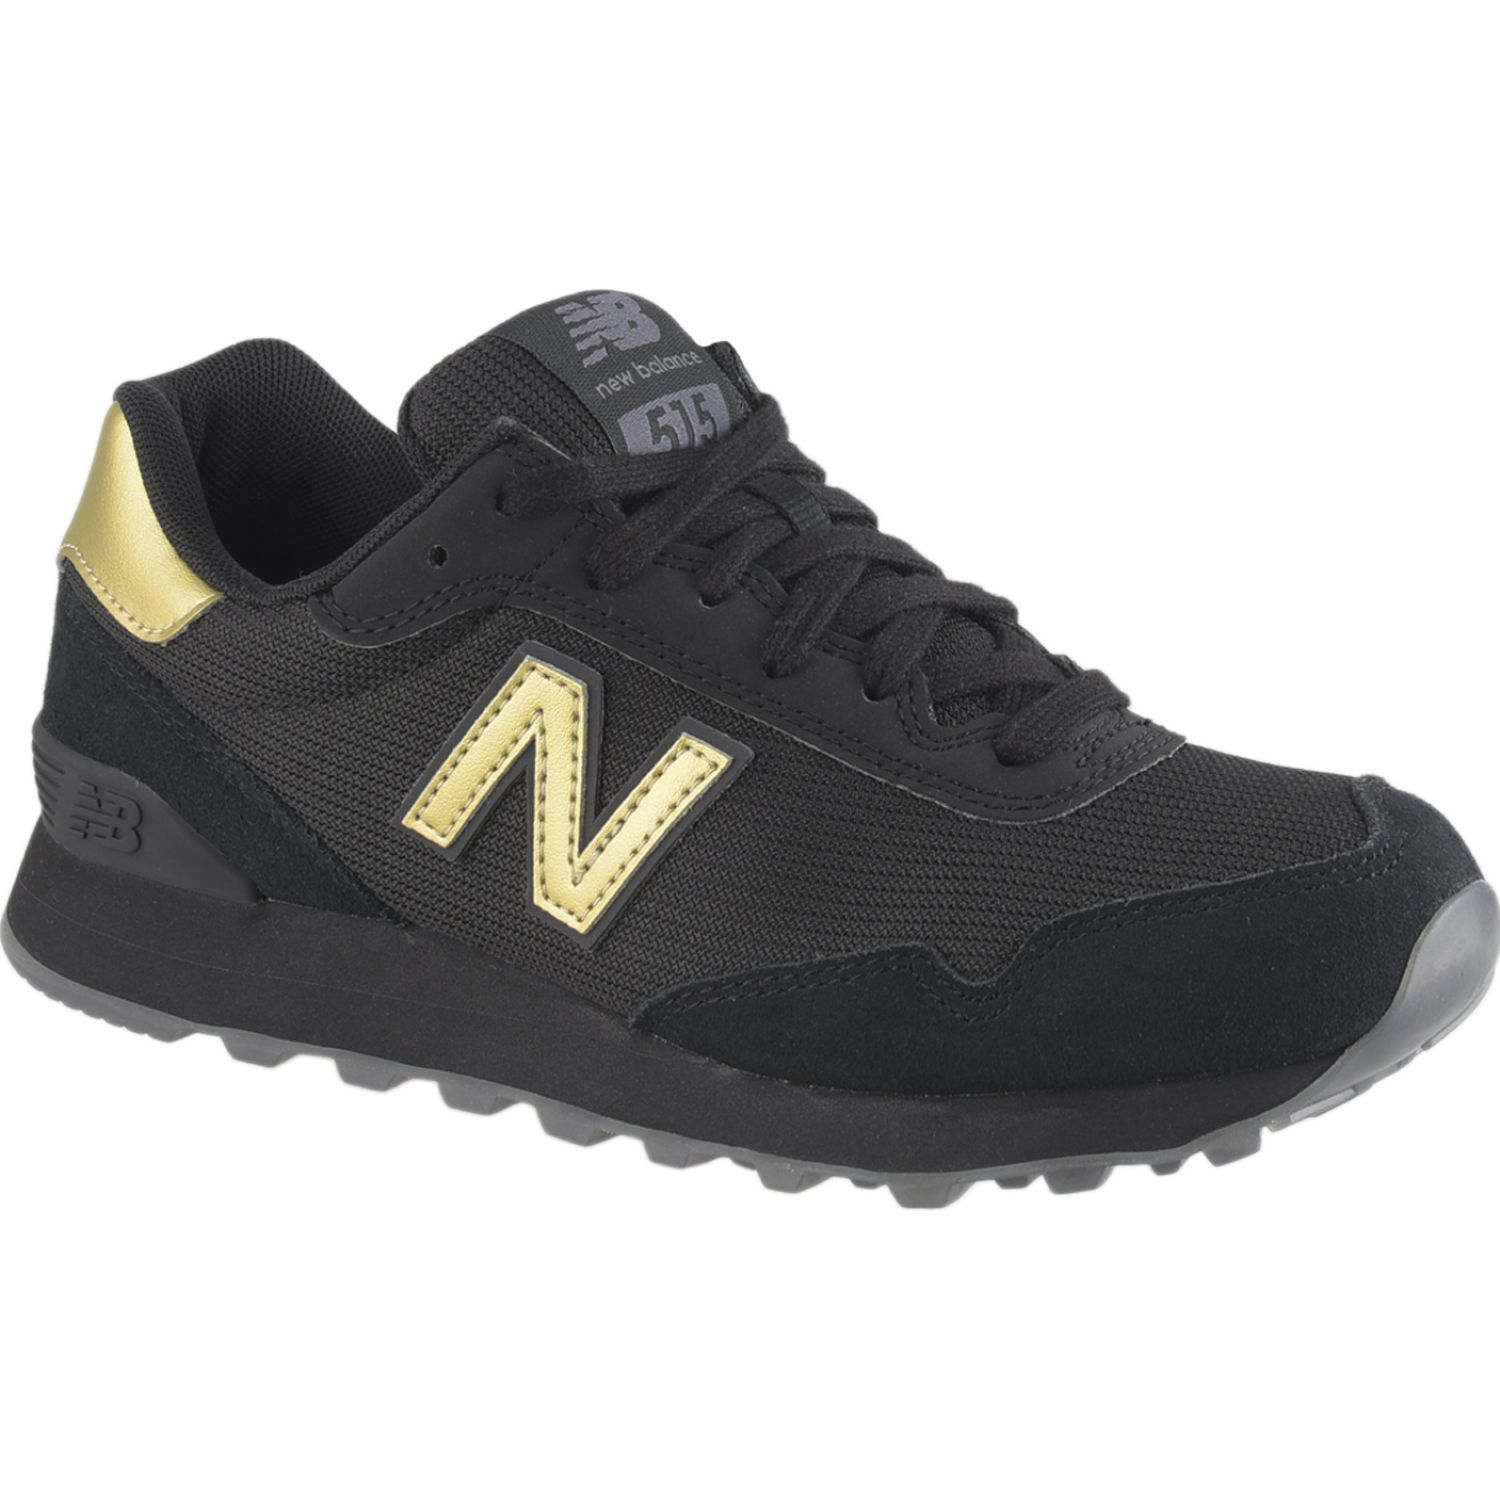 New Balance 515 Negro / dorado Walking